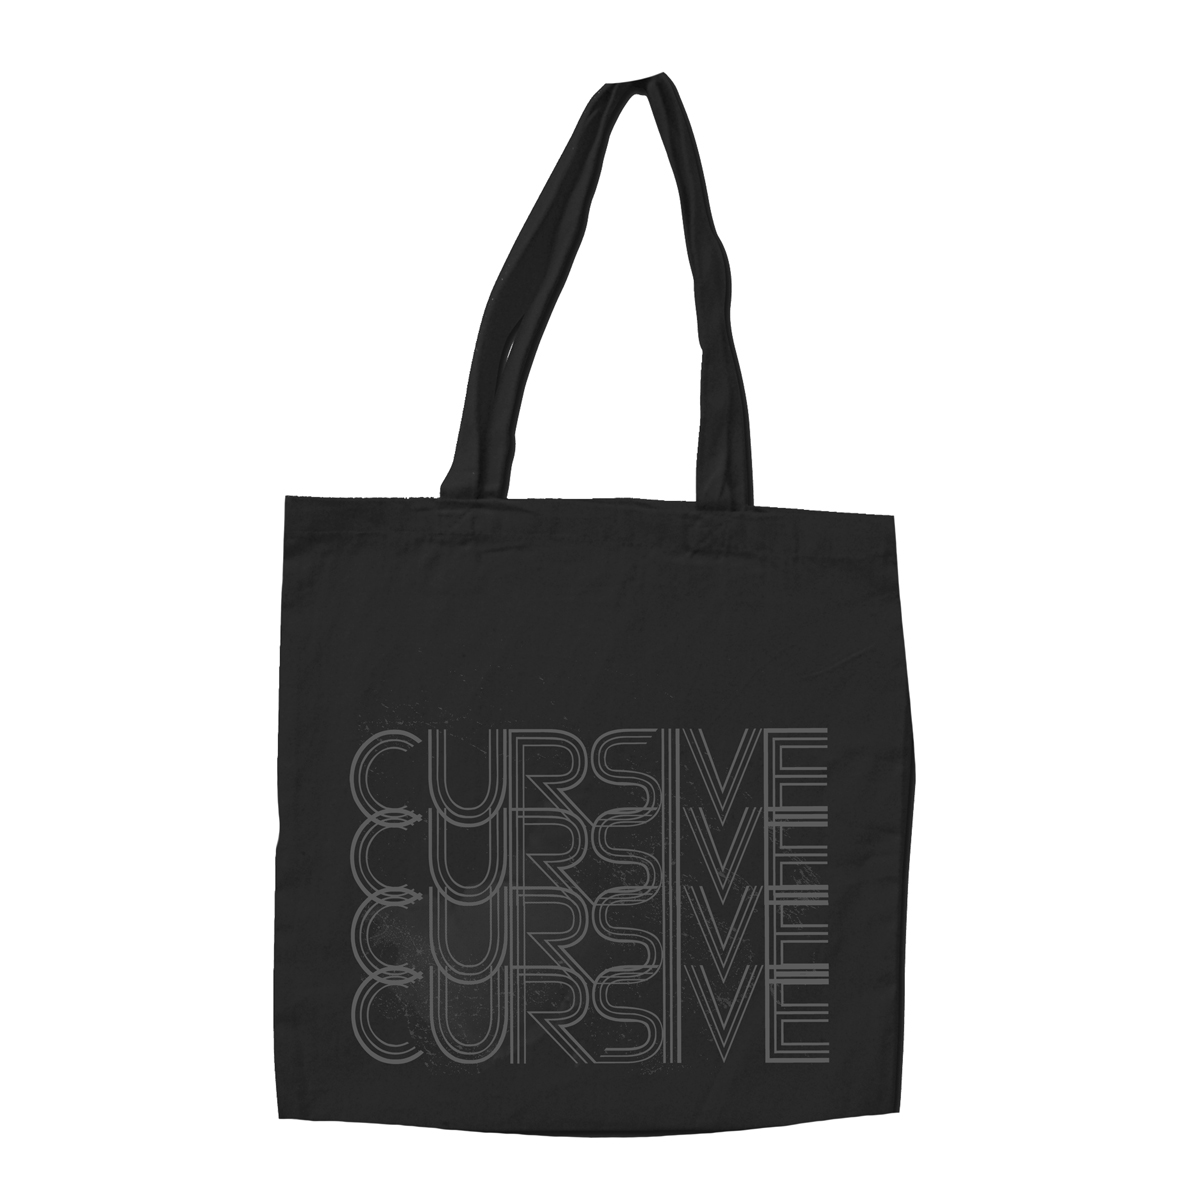 Grey Rainbow Totebag - Cursive